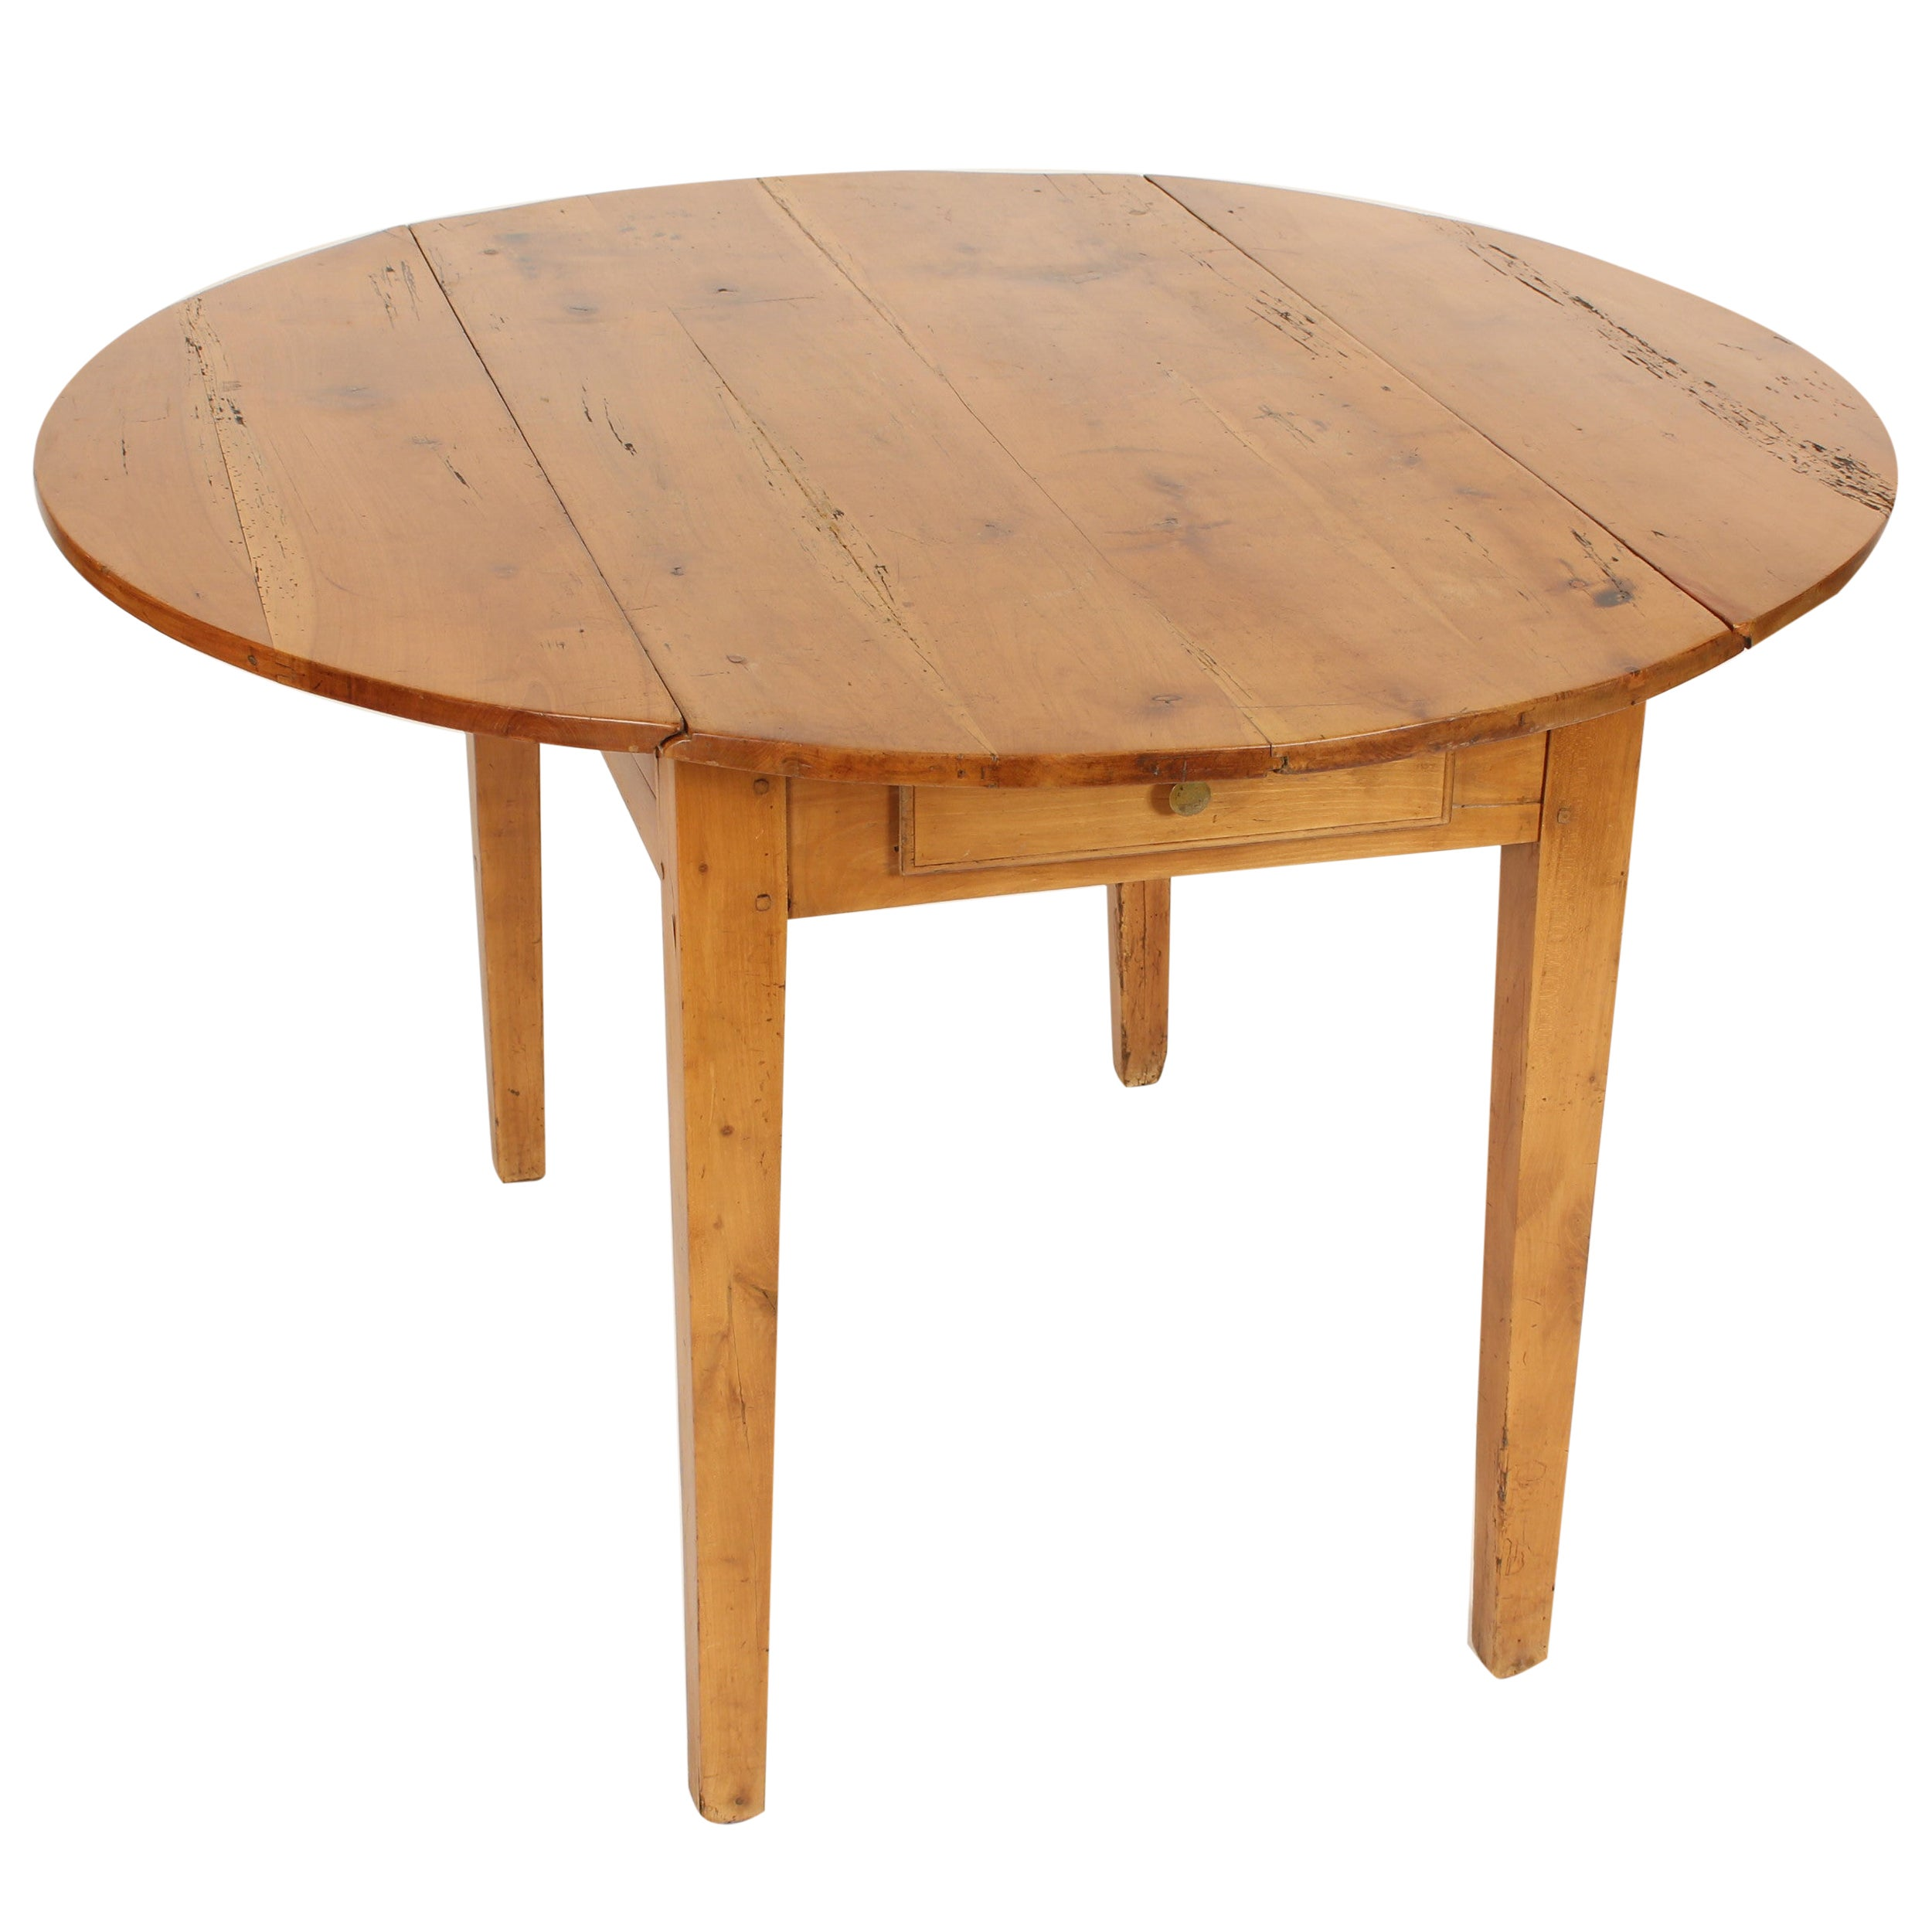 Antique Directoire Style Pine Drop-Leaf Table